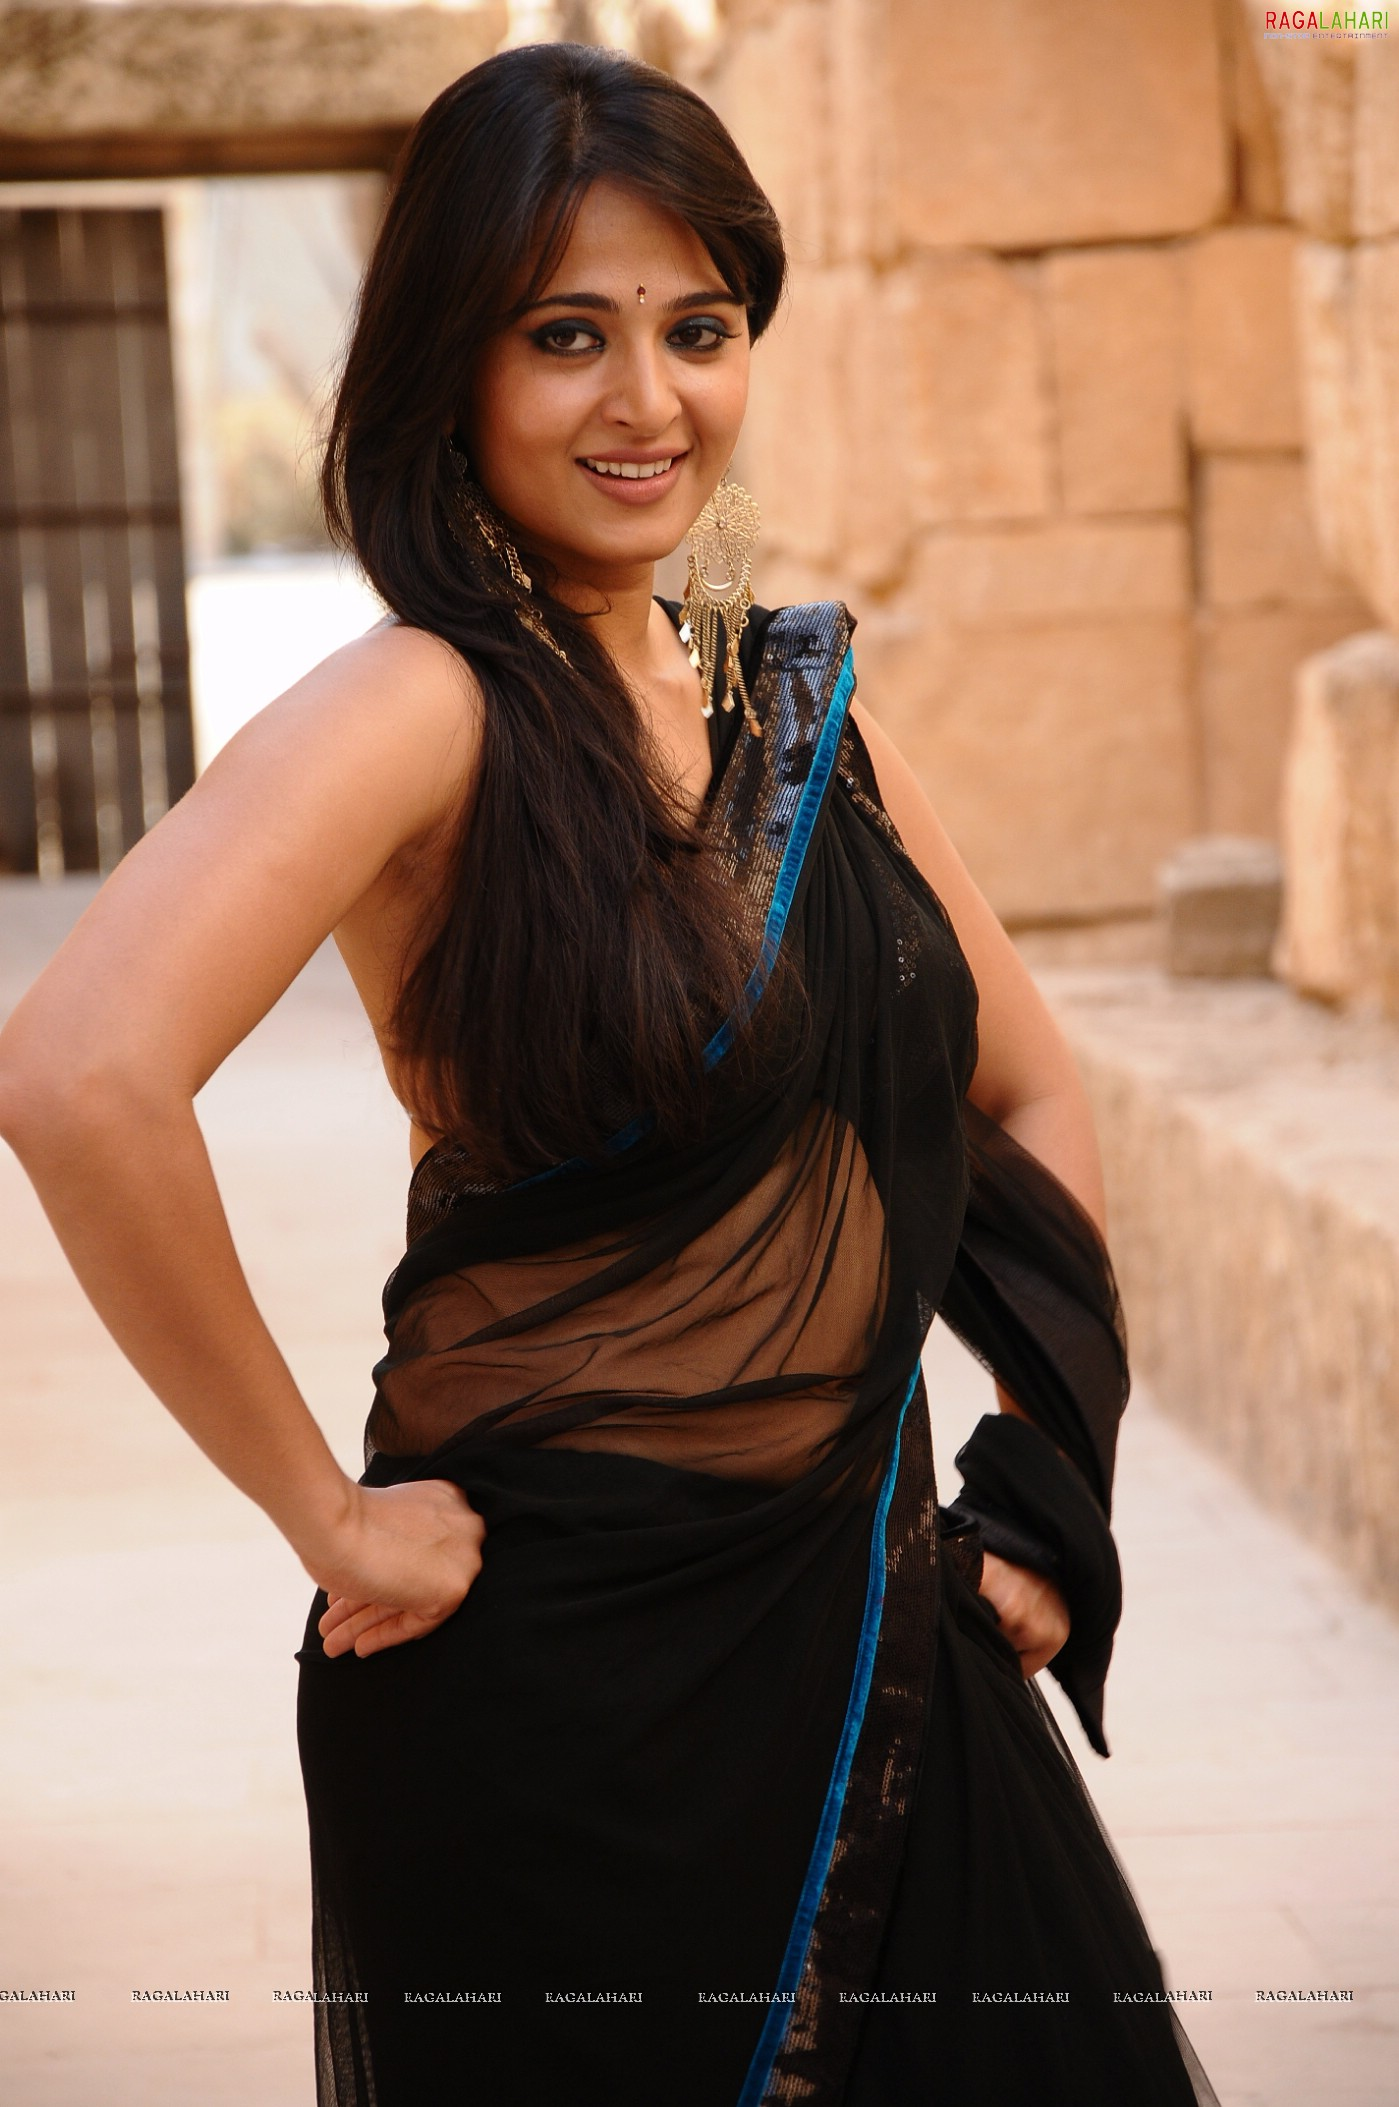 Anushka posters image 135 beautiful tollywood actress pictures anushka posters image 135 beautiful tollywood actress picturesstills heroines hot actress photos thecheapjerseys Gallery